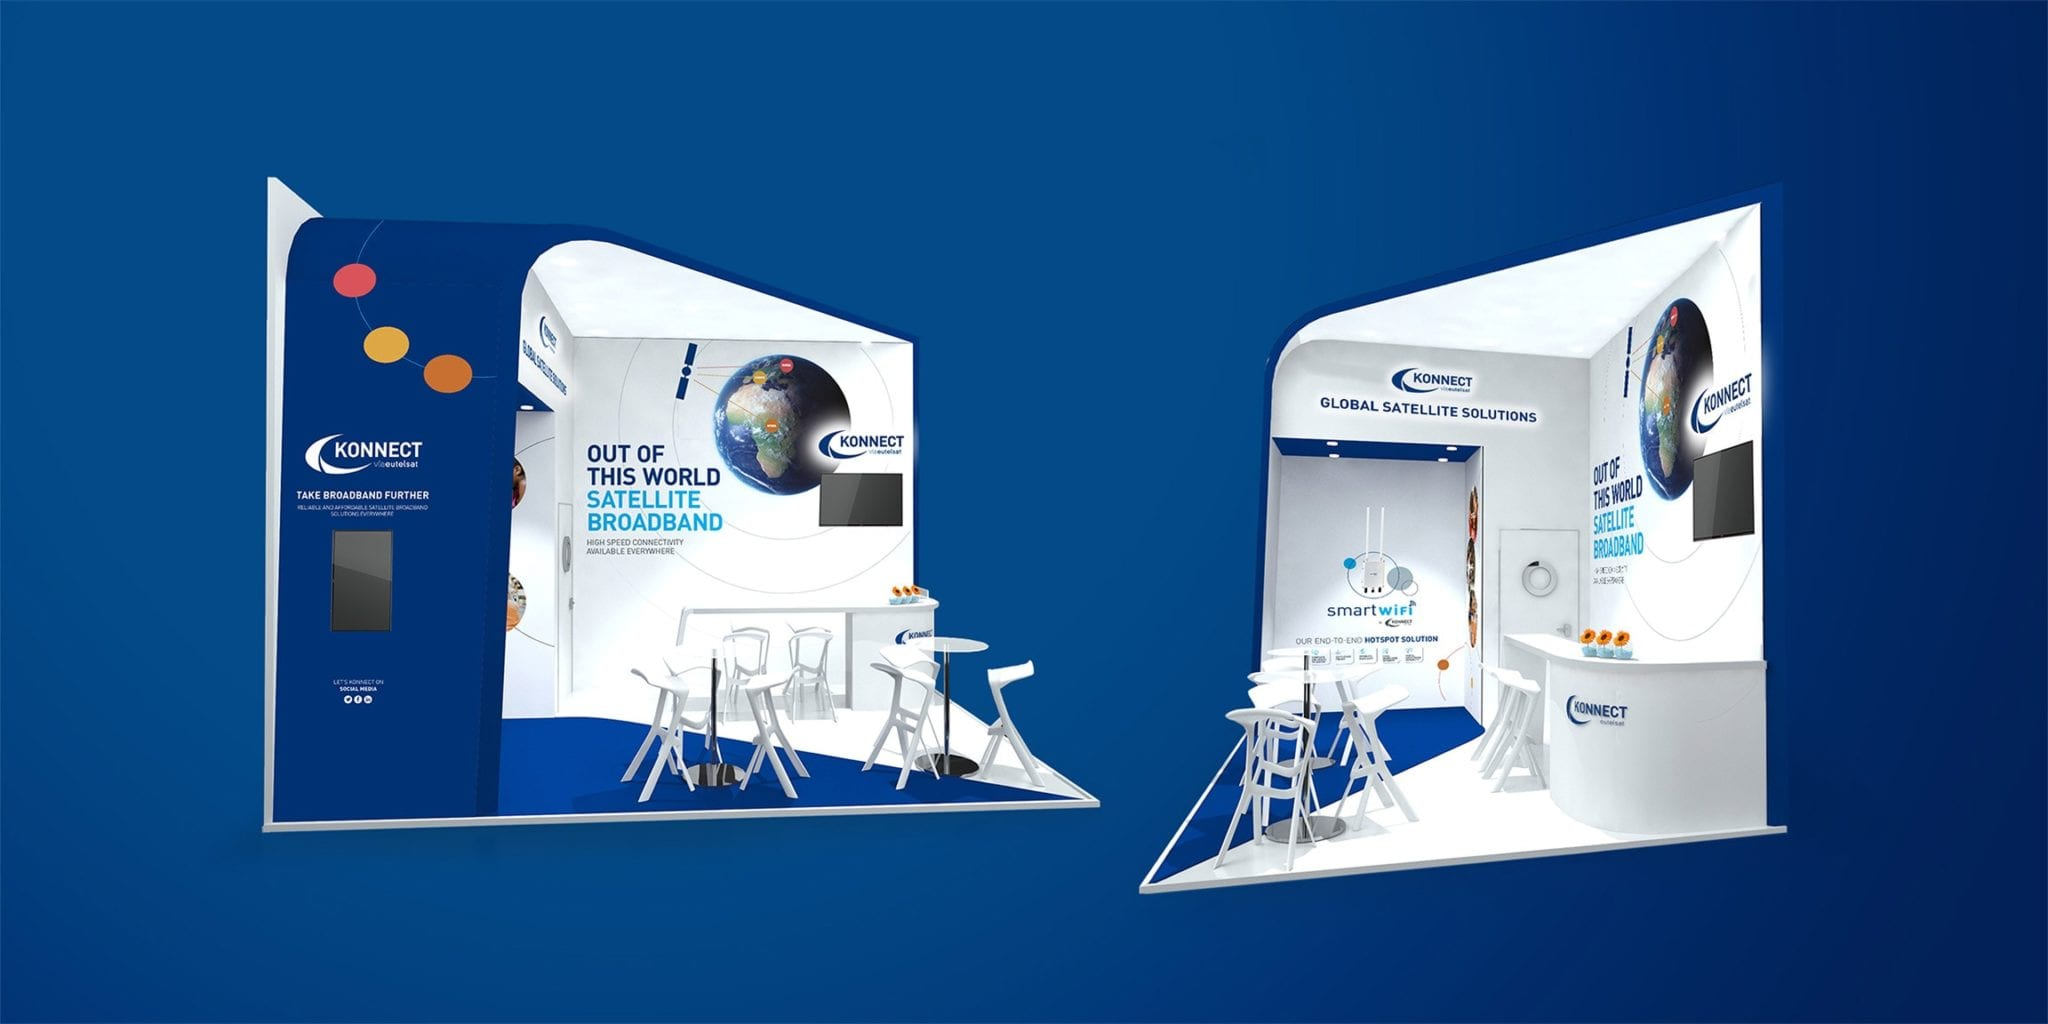 Konnect 3d render of the exhibition stand design from two perspectives on a blue background